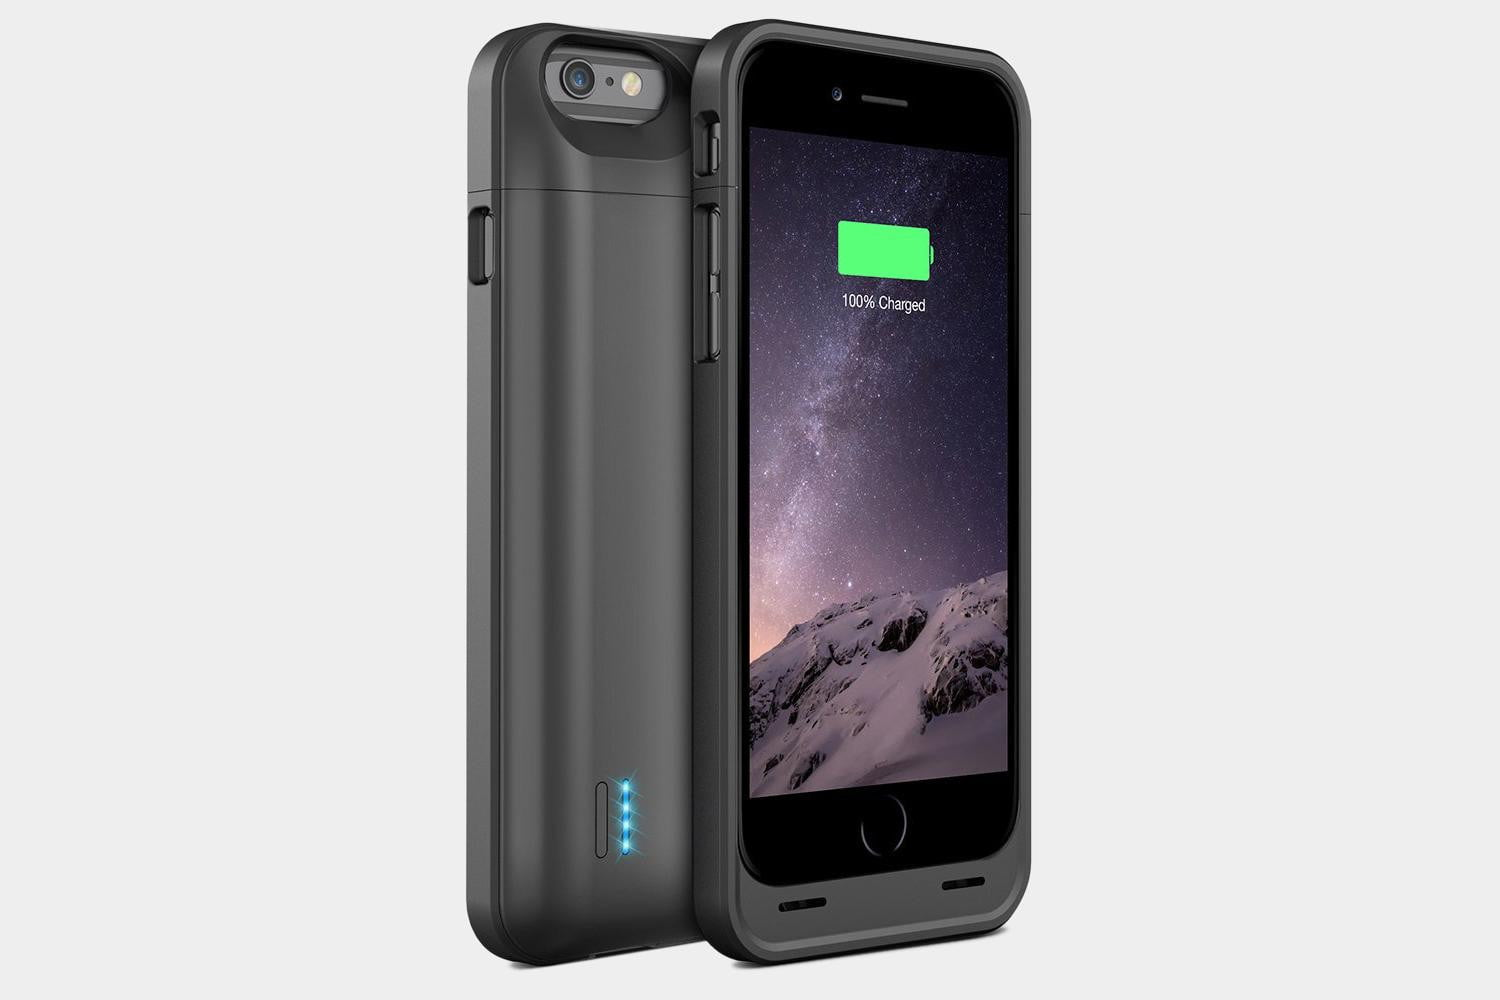 charging case for iphone 6 10 best iphone 6 battery cases digital trends 1275